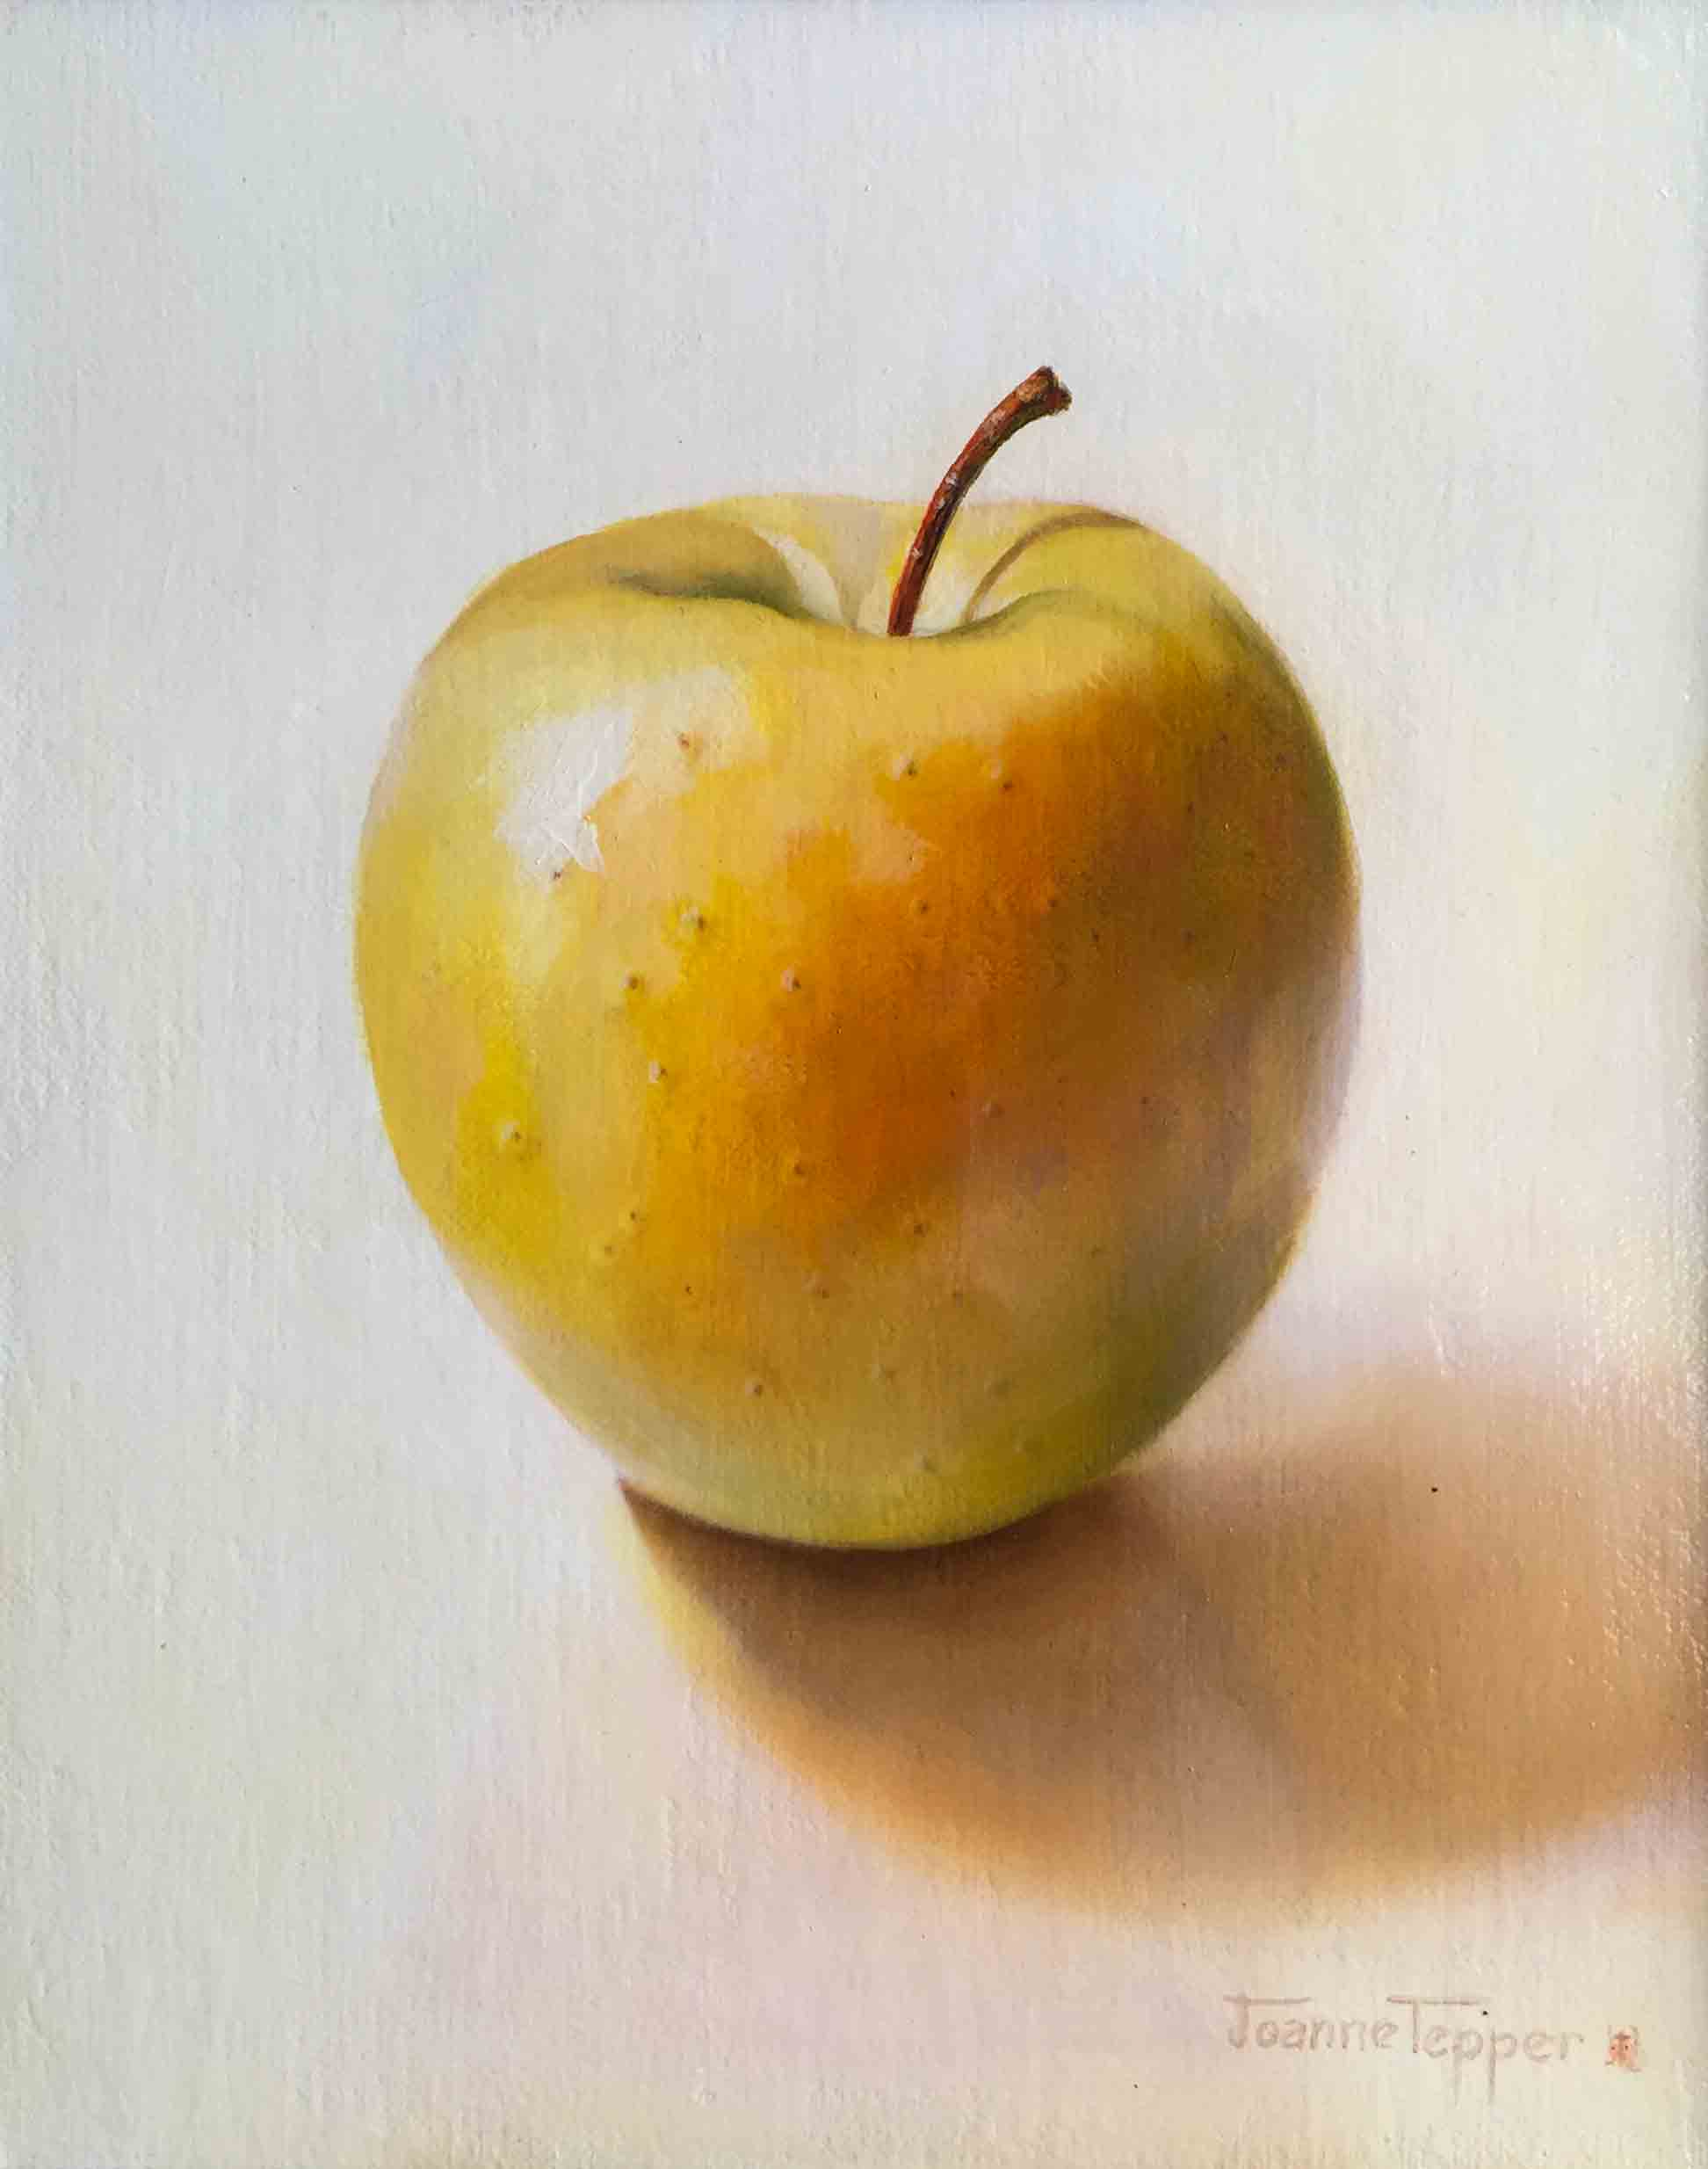 Joanne Tepper, Golden Delicious